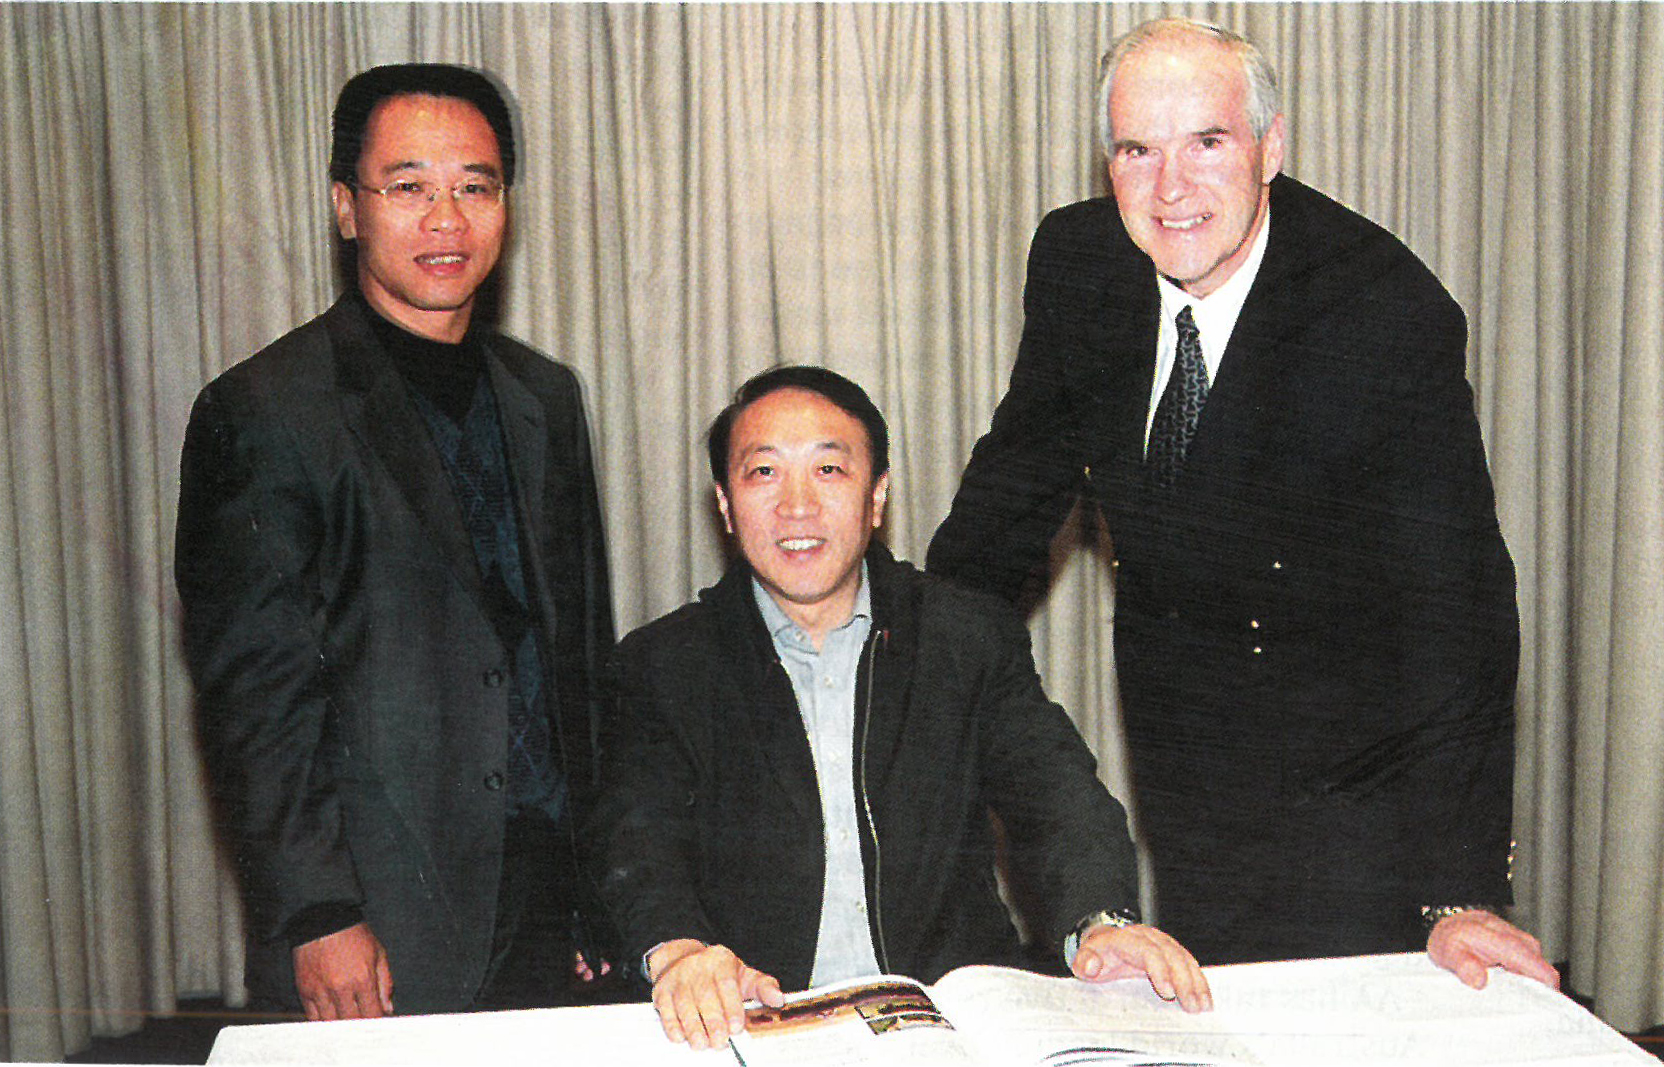 Angus Australia CEO Graham Truscott discussing export with members of the Chinese Government Delegation in September 2007, Angus Australian Bulletin 2008